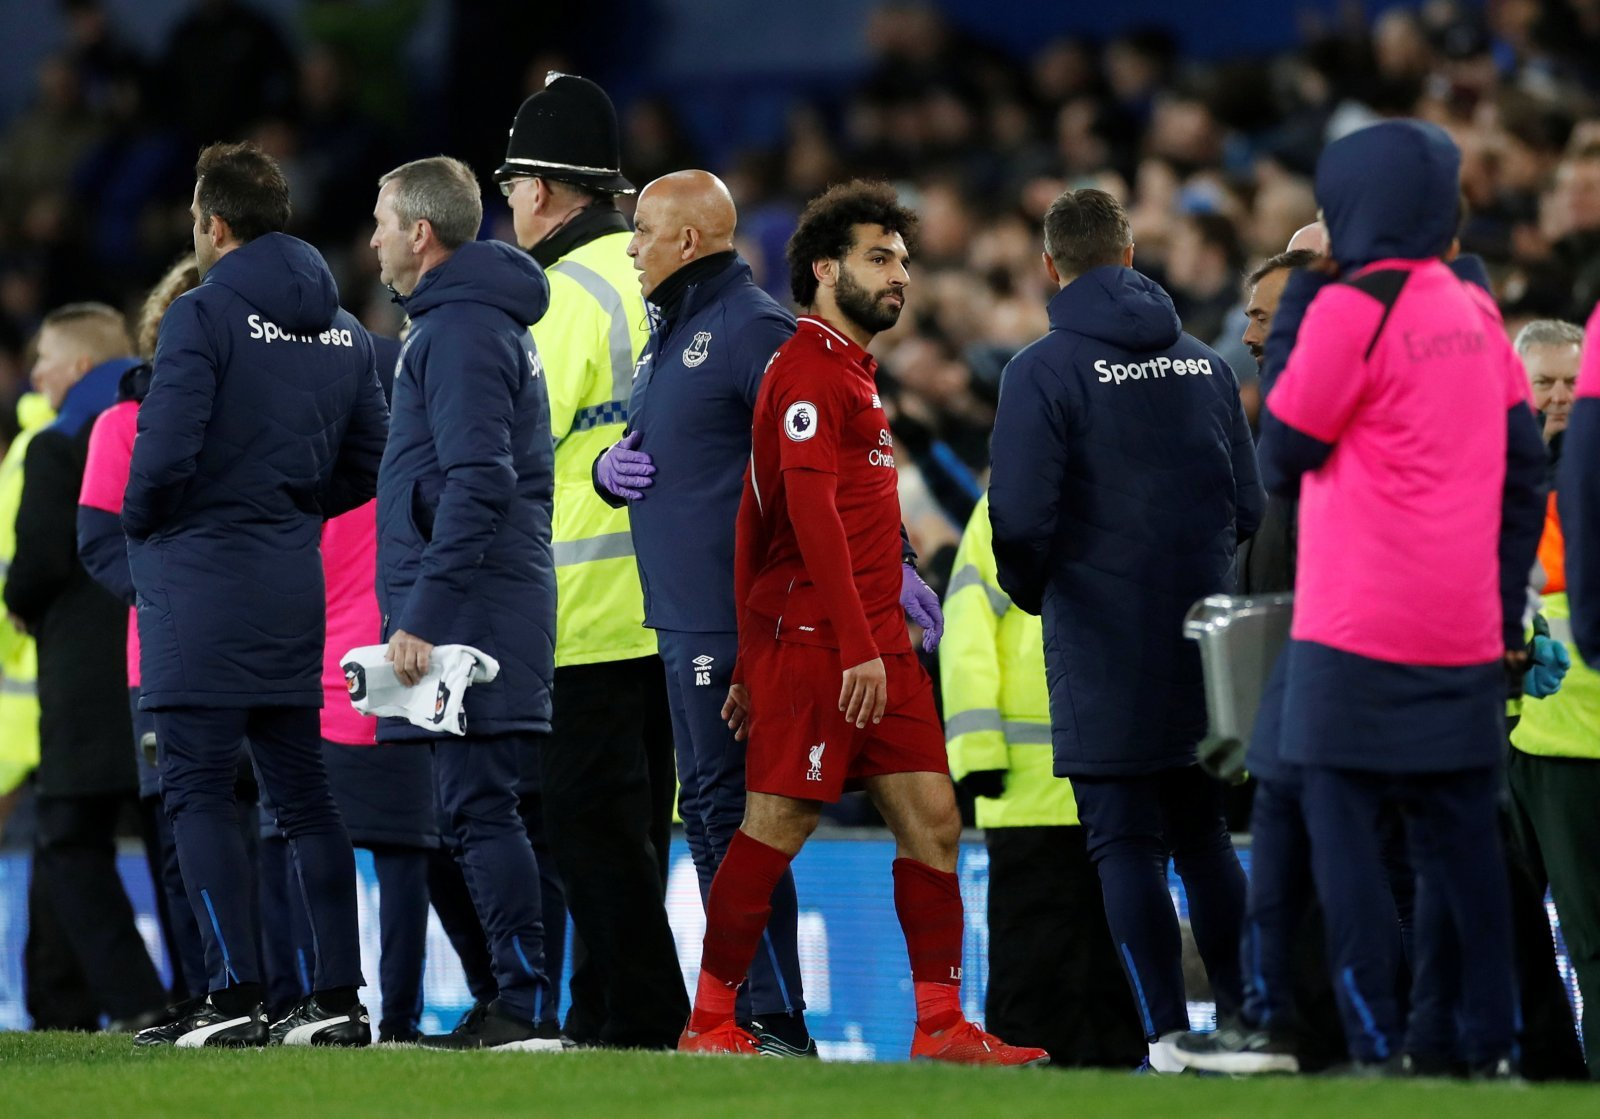 Mohamed Salah crumbling to fiery pressure of the heated title race